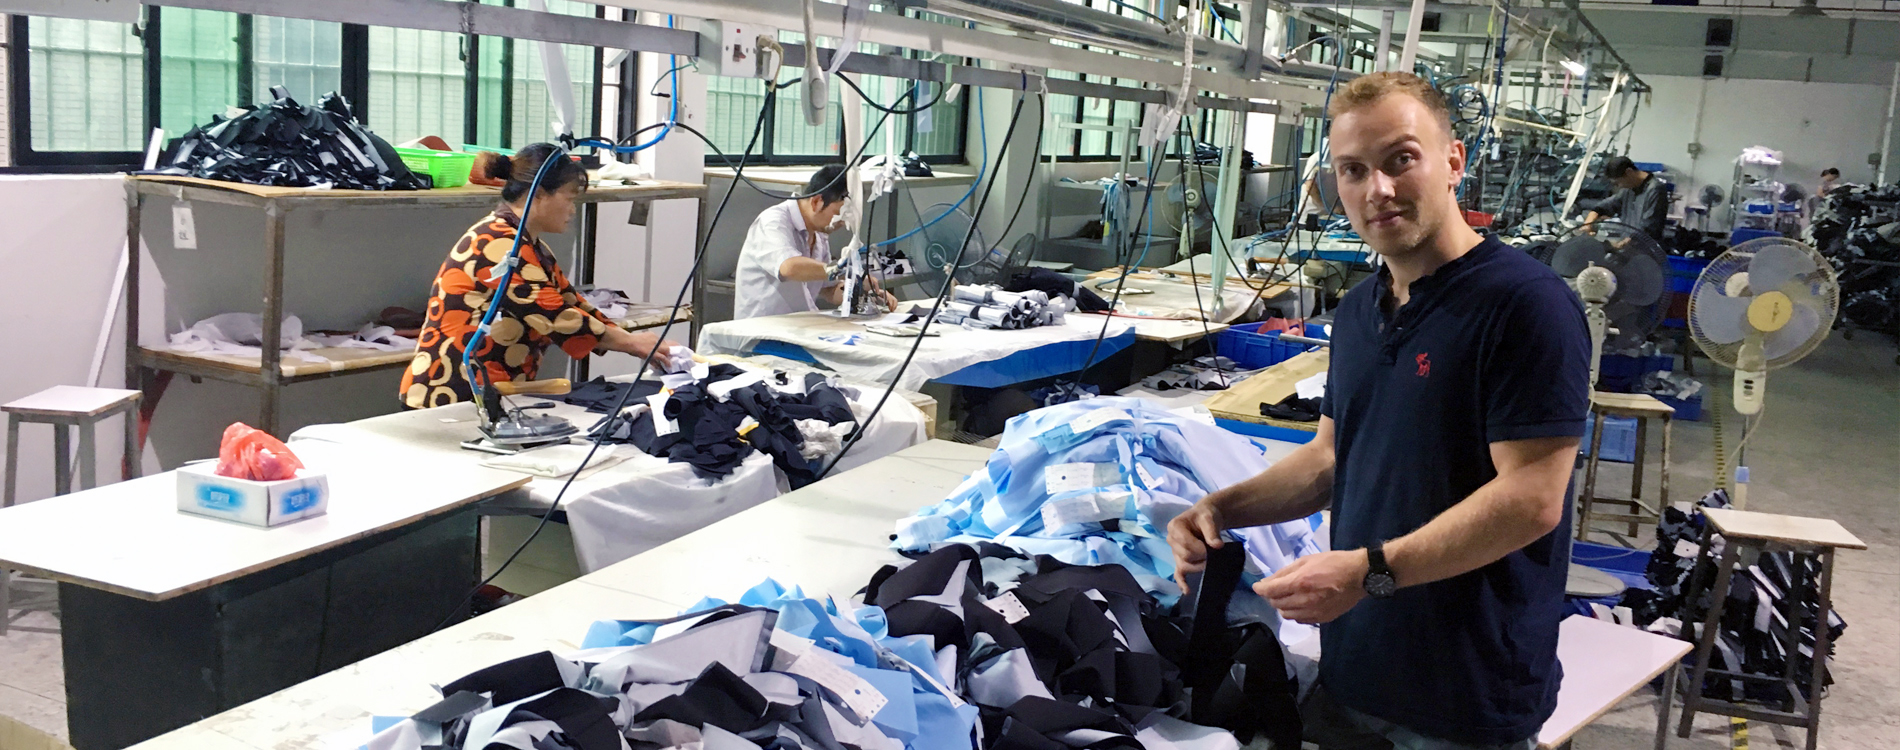 International clothing manufacturers directory. Our directory gives details of hundreds of factories across the world to help you locate the ideal clothing manufacturer for you. Easy to use search using Google Map technology.